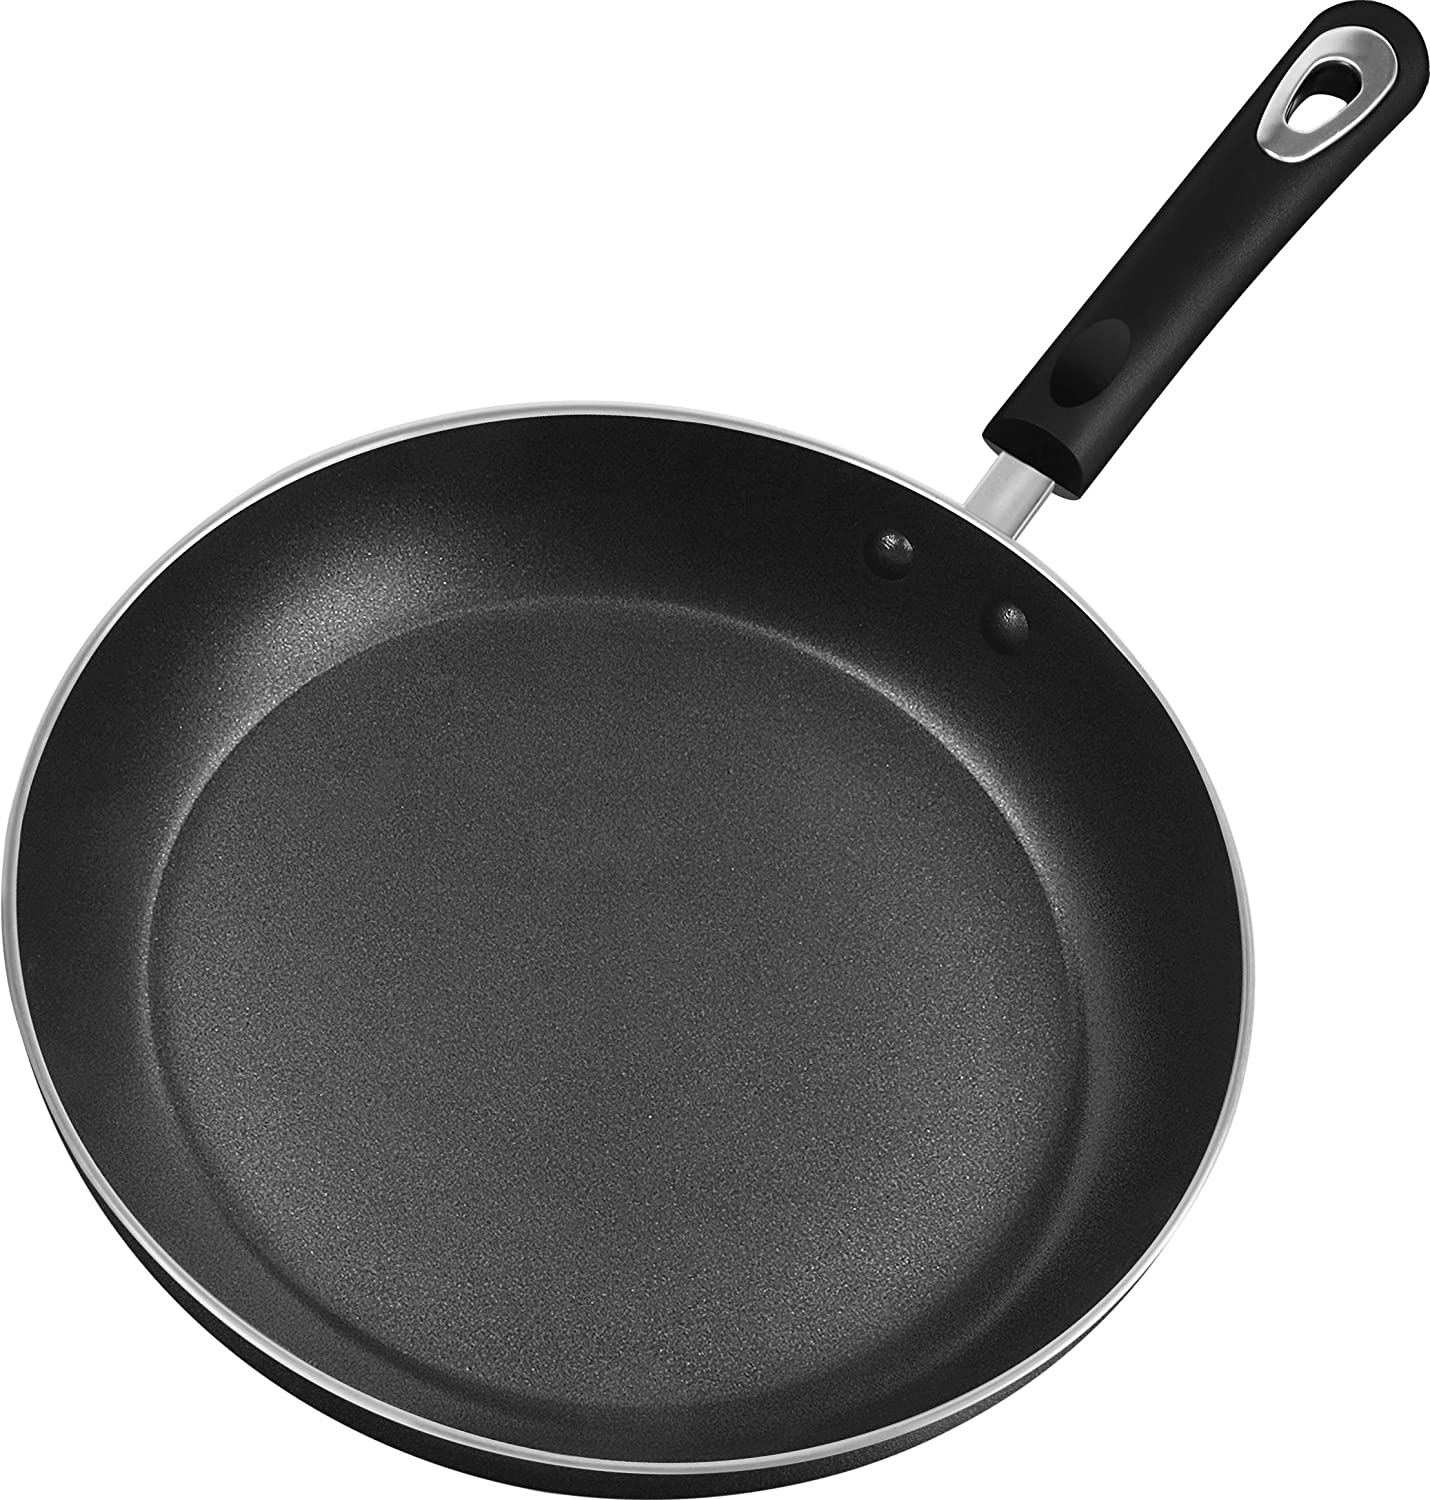 Utopia Kitchen 11 Inch Nonstick Frying Pan - Induction Bottom - Aluminum Alloy and Scratch Resistant Body - Riveted Handle - Dishwasher Friendly: Kitchen & Dining